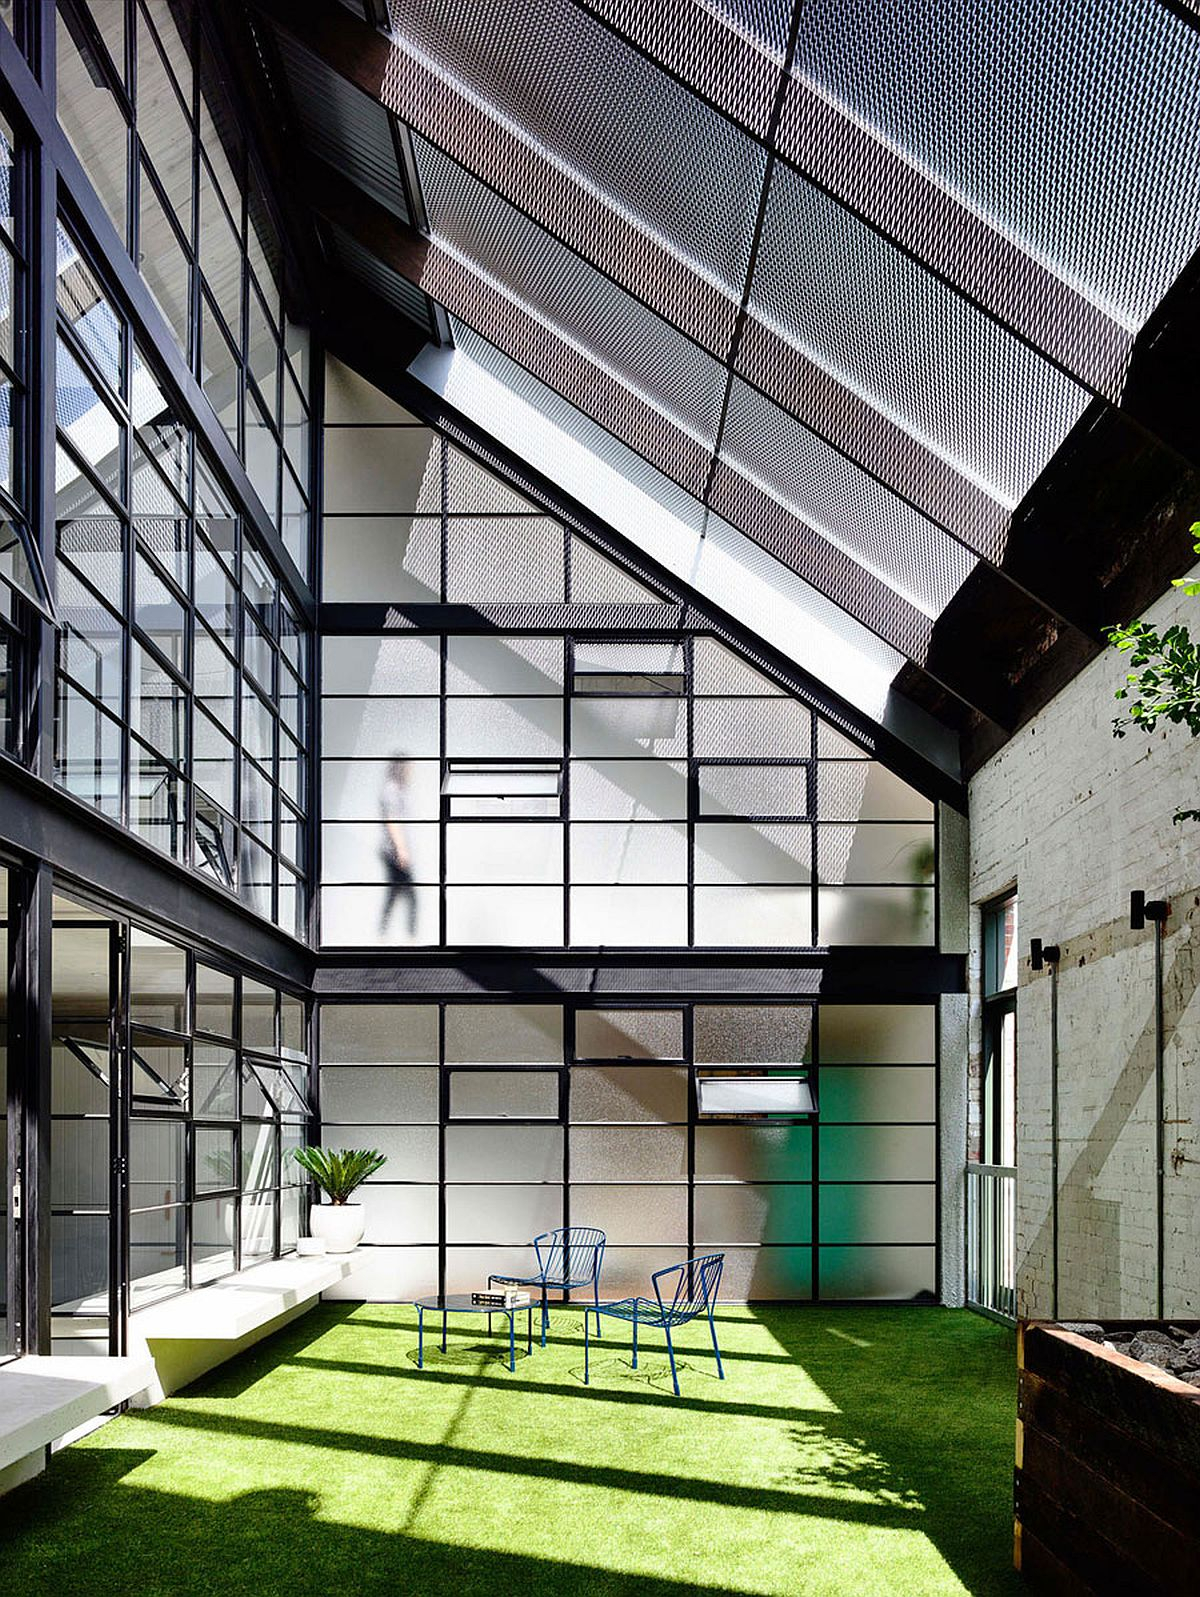 Covered courtyard of the FitzroyLoft in Melbourne